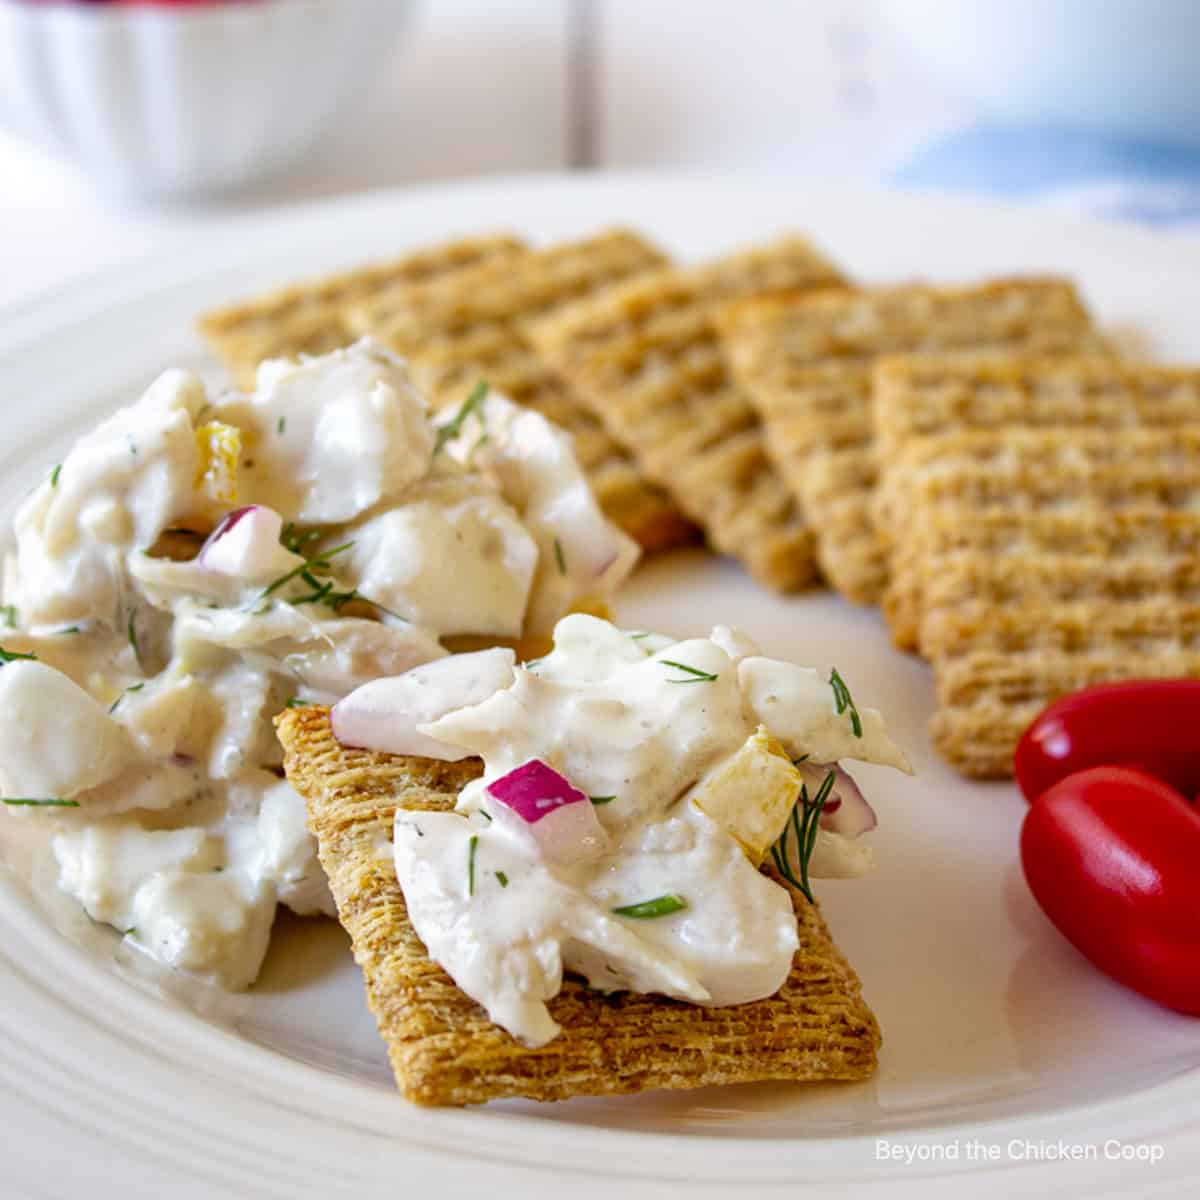 Crackers topped with walleye salad.